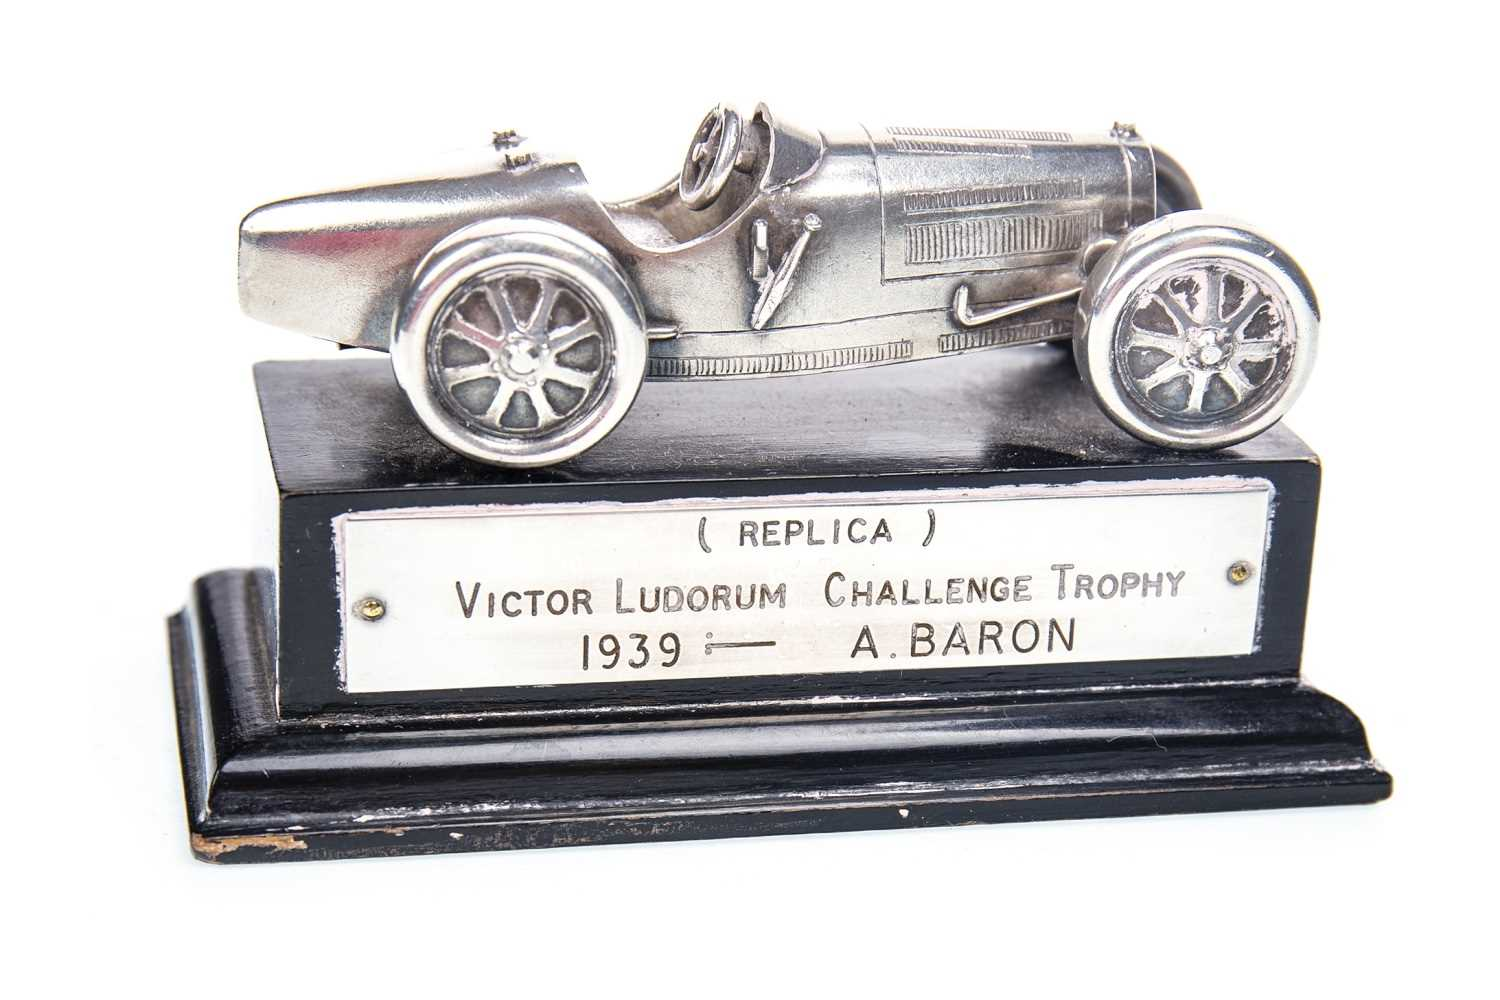 Lot 1907-BUGATTI INTEREST - EARLY 20TH CENTURY REPLICA VICTOR LUDORUM CHALLENGE TROPHY AWARDED TO A. BARON